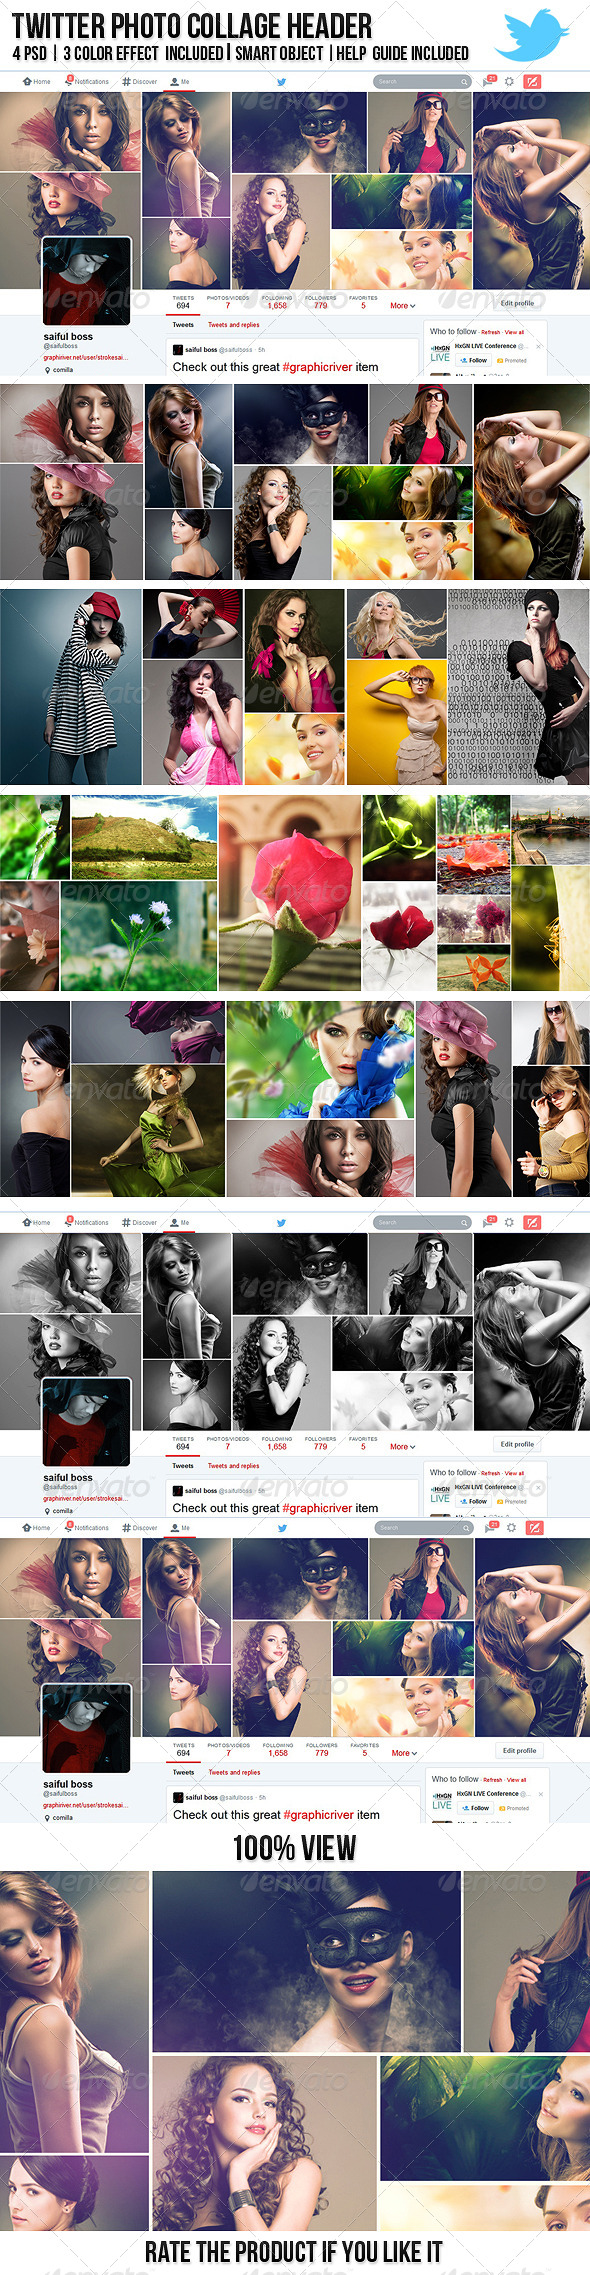 GraphicRiver Twitter Photo Collage Header 7641544